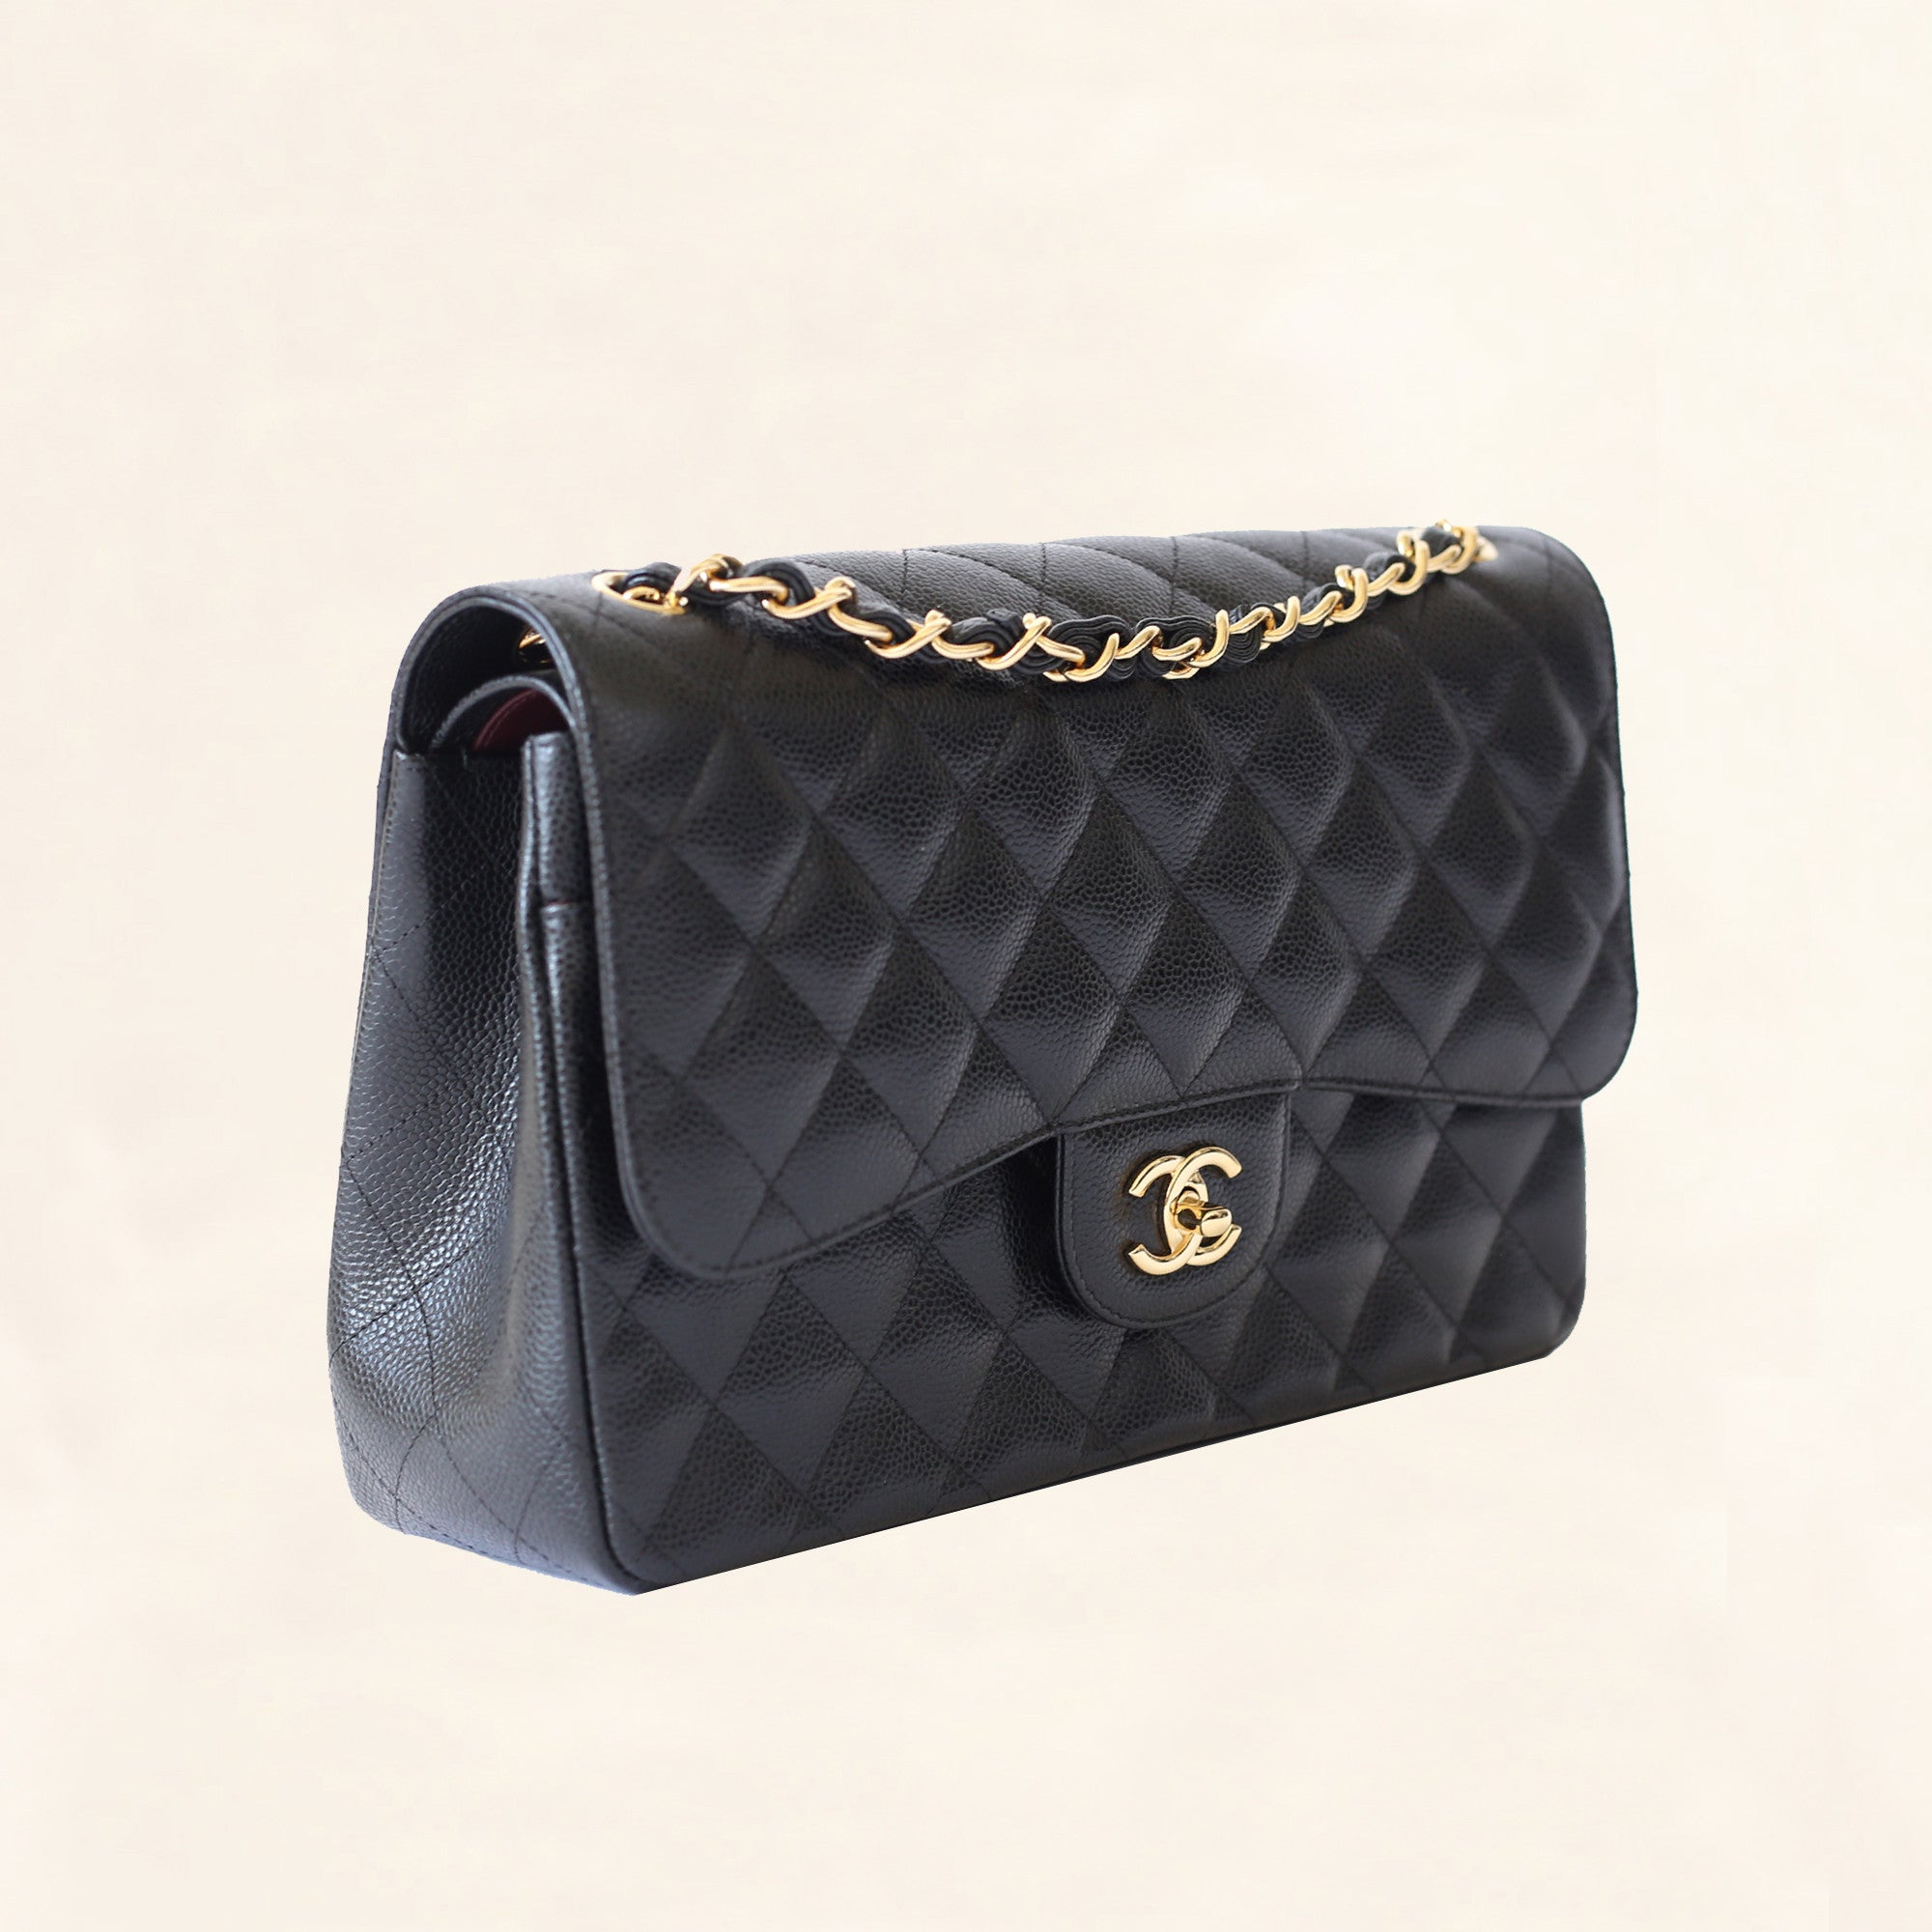 1b61036ce99 Chanel | Black Caviar Classic Double Flap with Gold Hardware | Jumbo -  The-Collectory